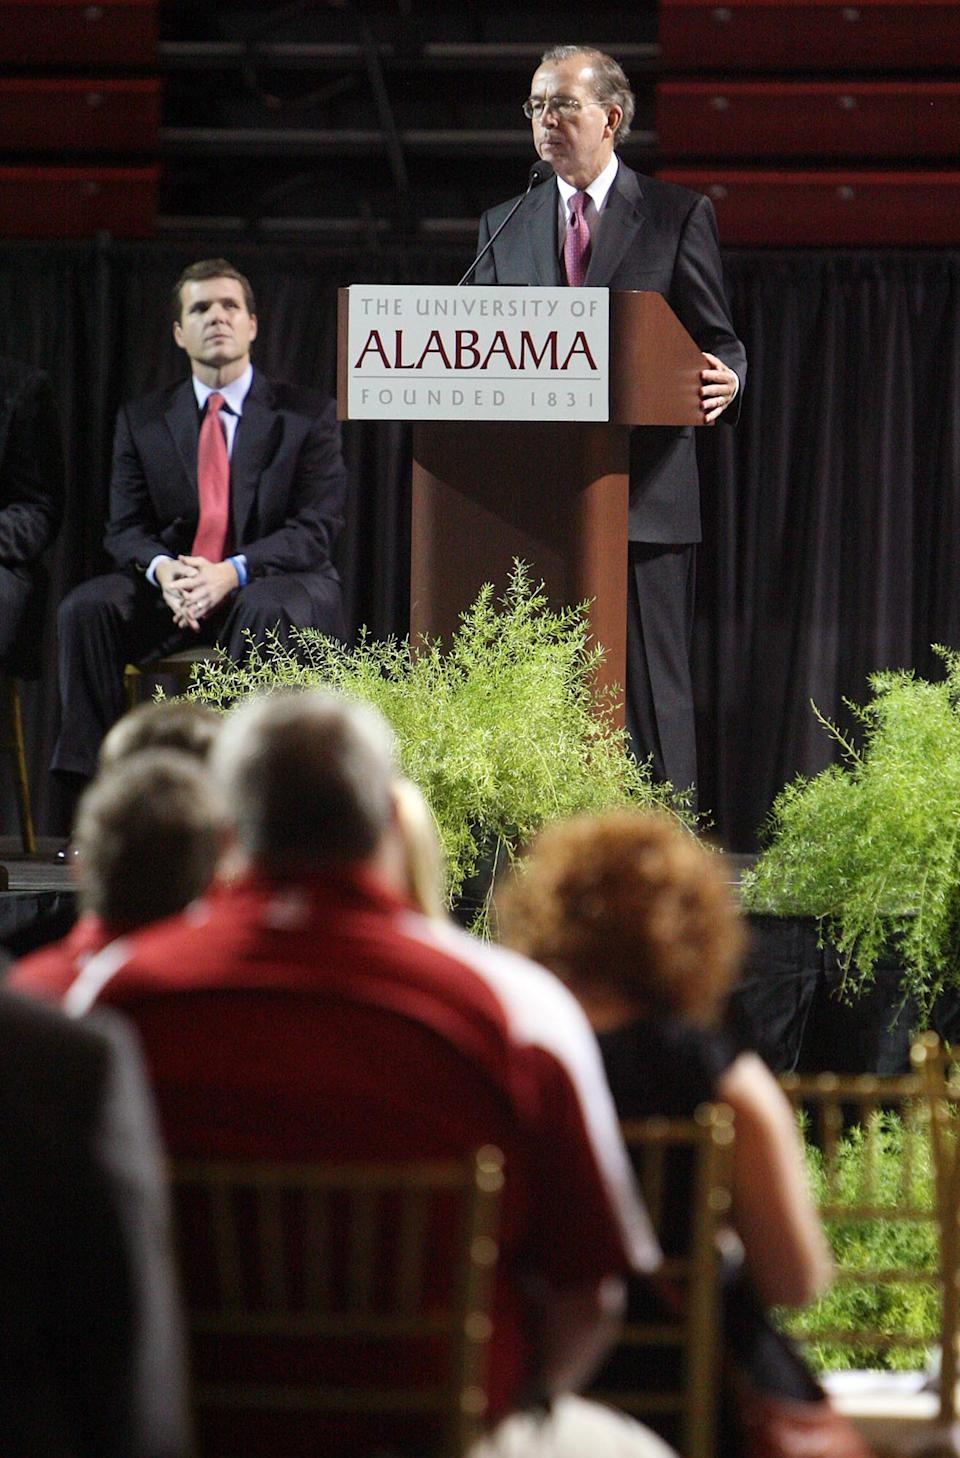 University of Alabama president Robert Witt speaks during a memorial service for the six University of Alabama students who were killed during the April 27 tornado that ripped through Tuscaloosa hosted in Foster Auditorium Friday, Aug. 5, 2011. (AP Photo/Michelle Lepianka Carter - Tuscaloosa News)